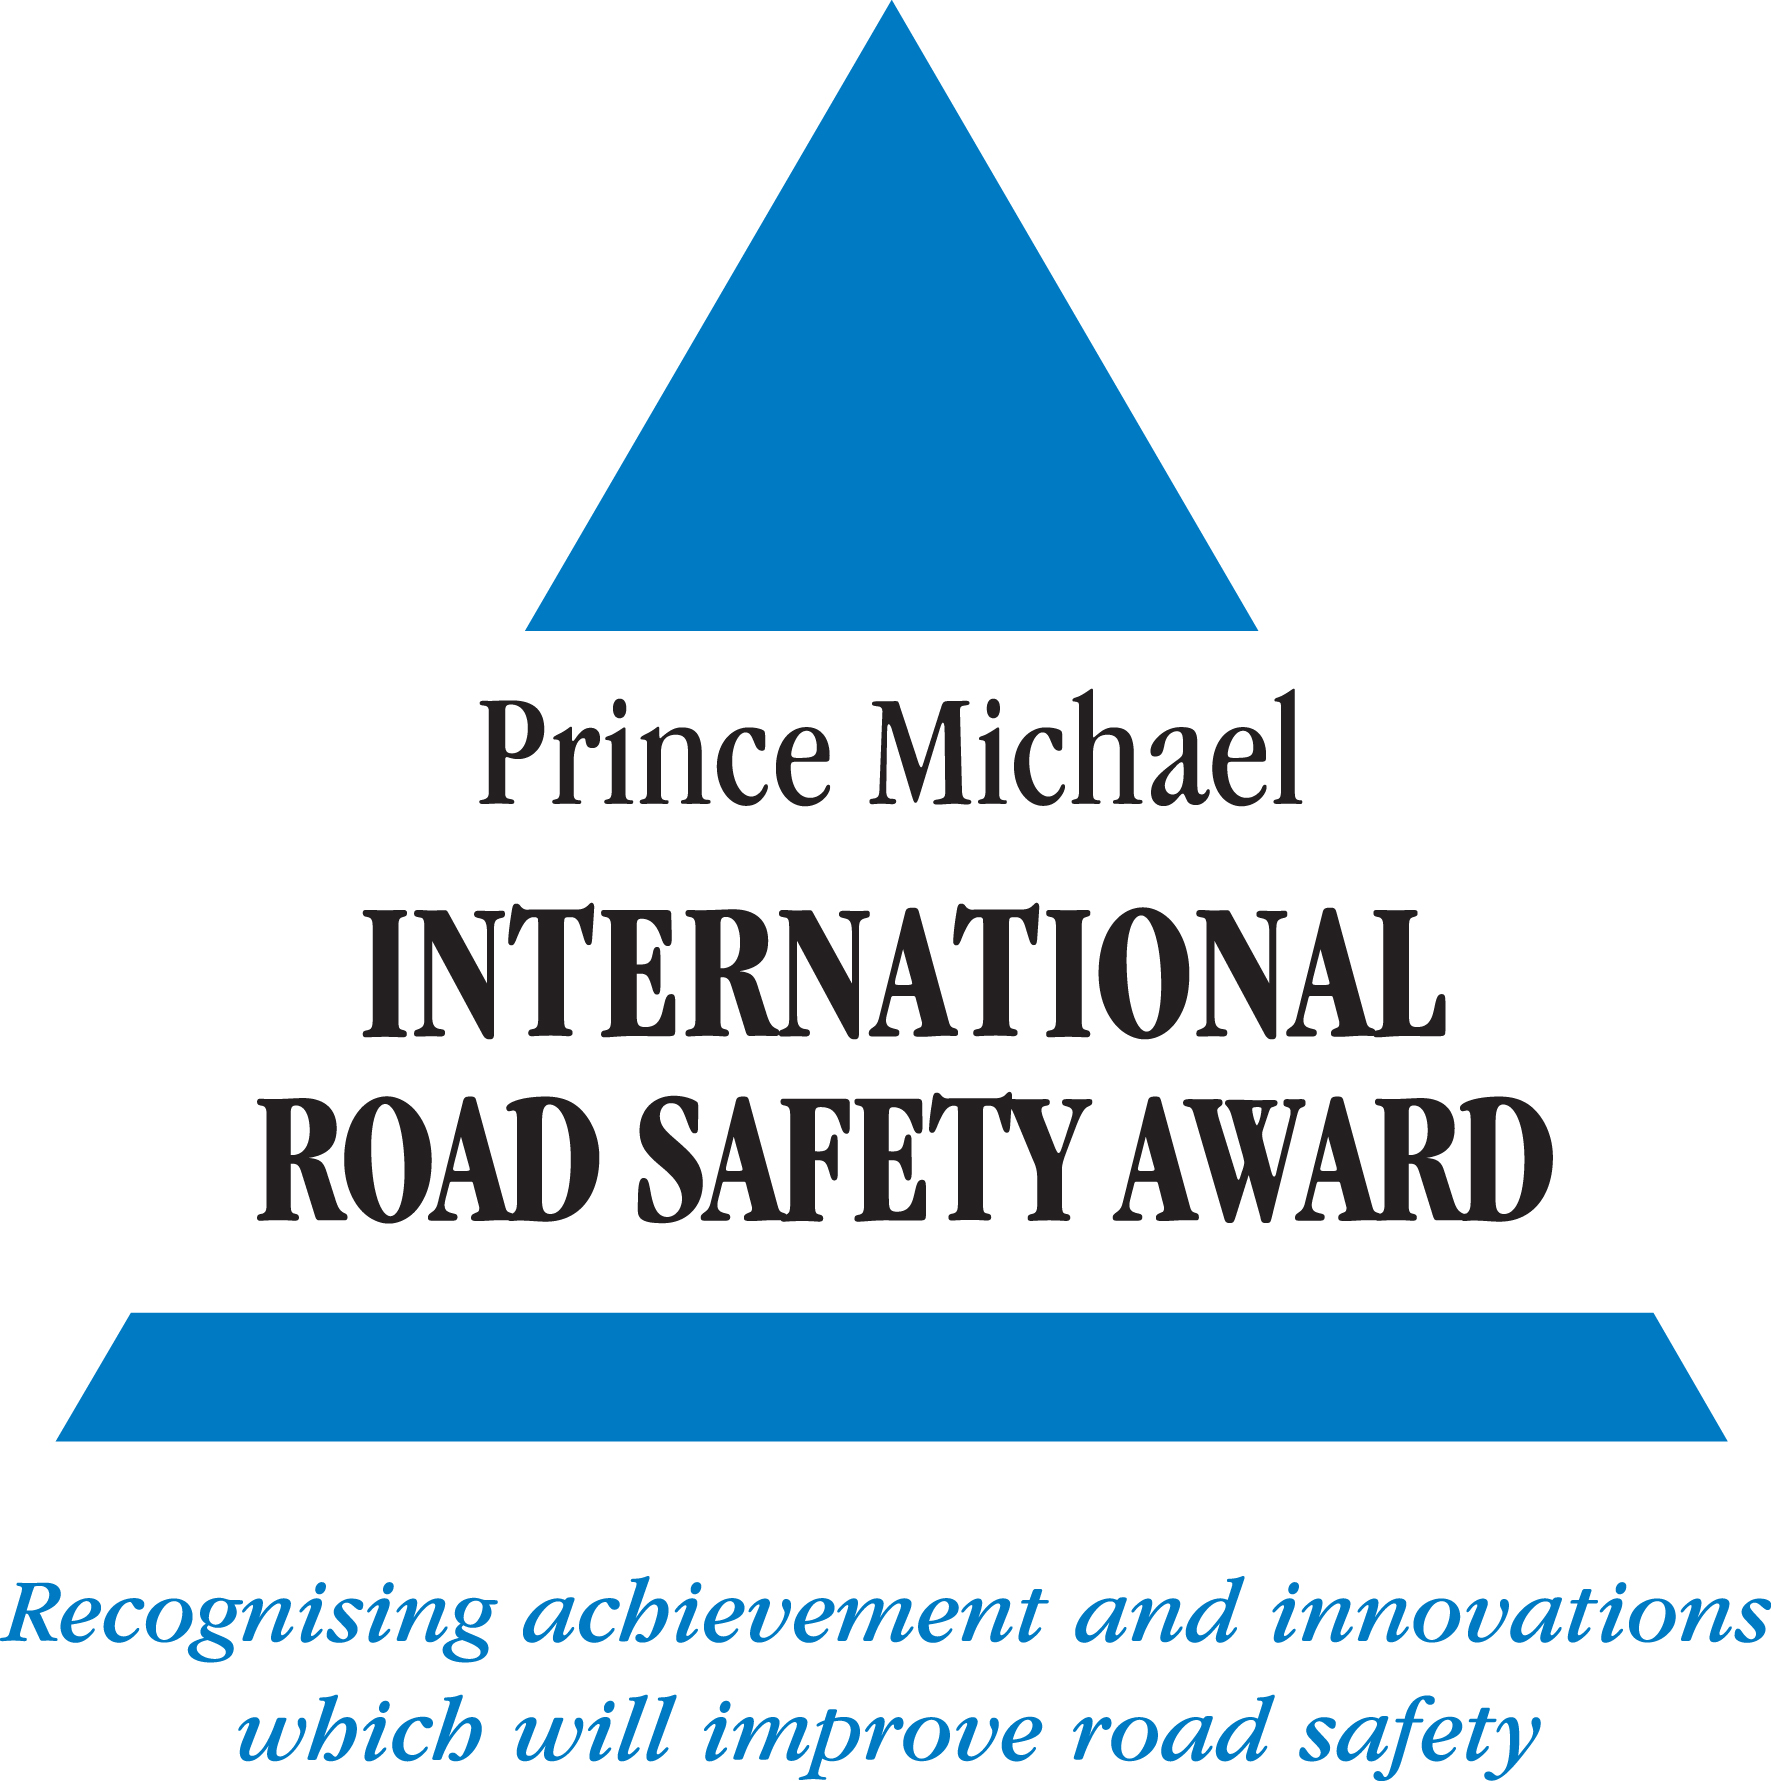 Prince Michael International Road Safety Award logo